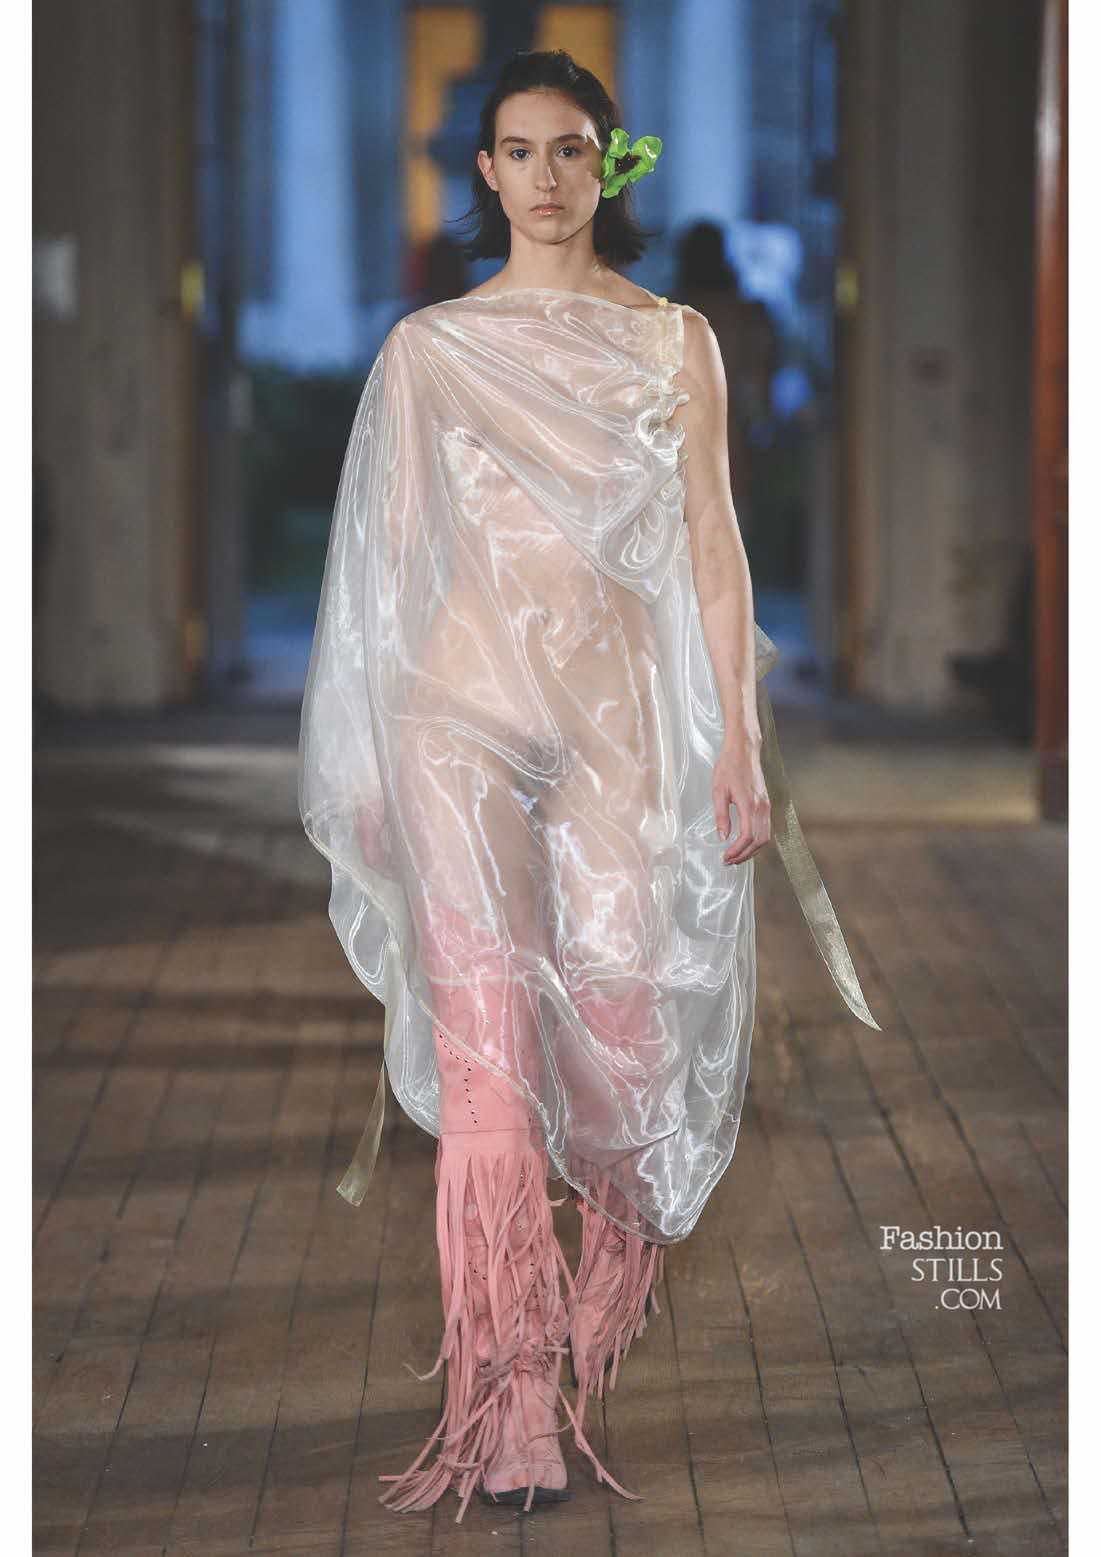 Neith Nyer_1513681565_55_look-book-_-press-release-ss18-neith-nyer-003.jpg